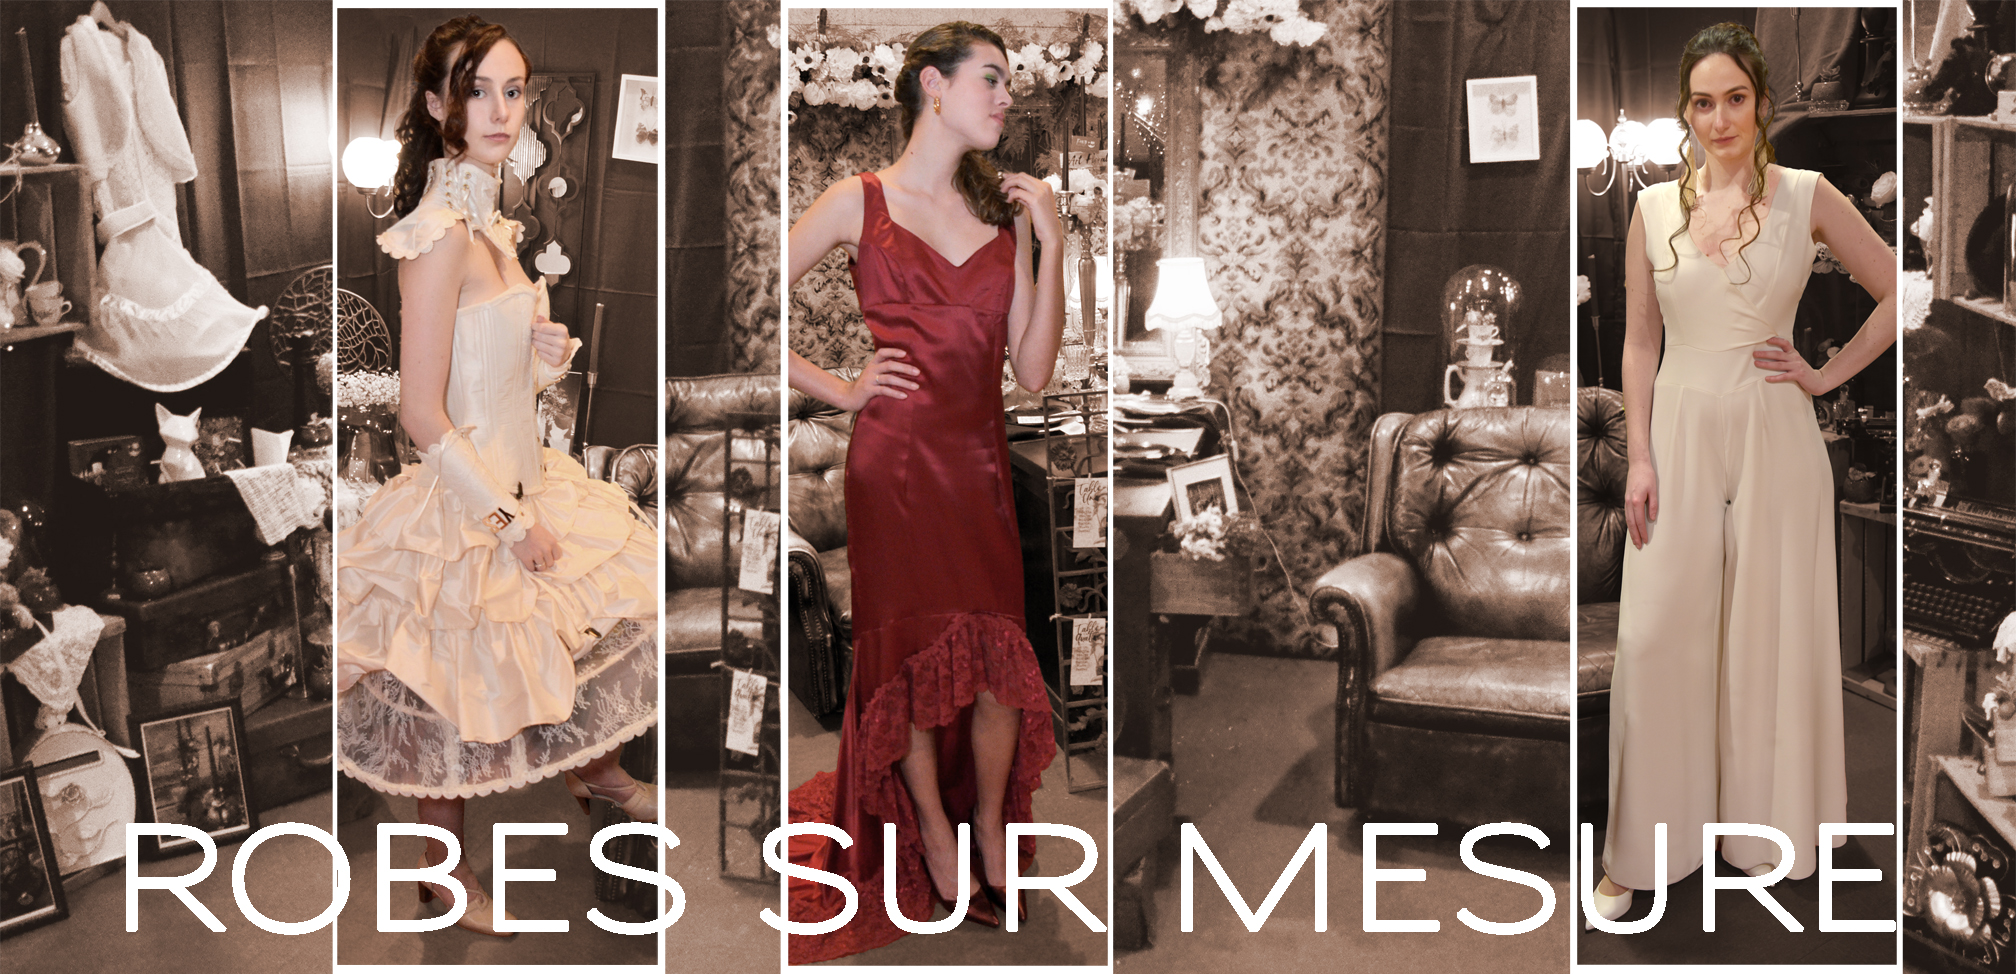 Robes sur mesure - Fabienne Dimanov Paris